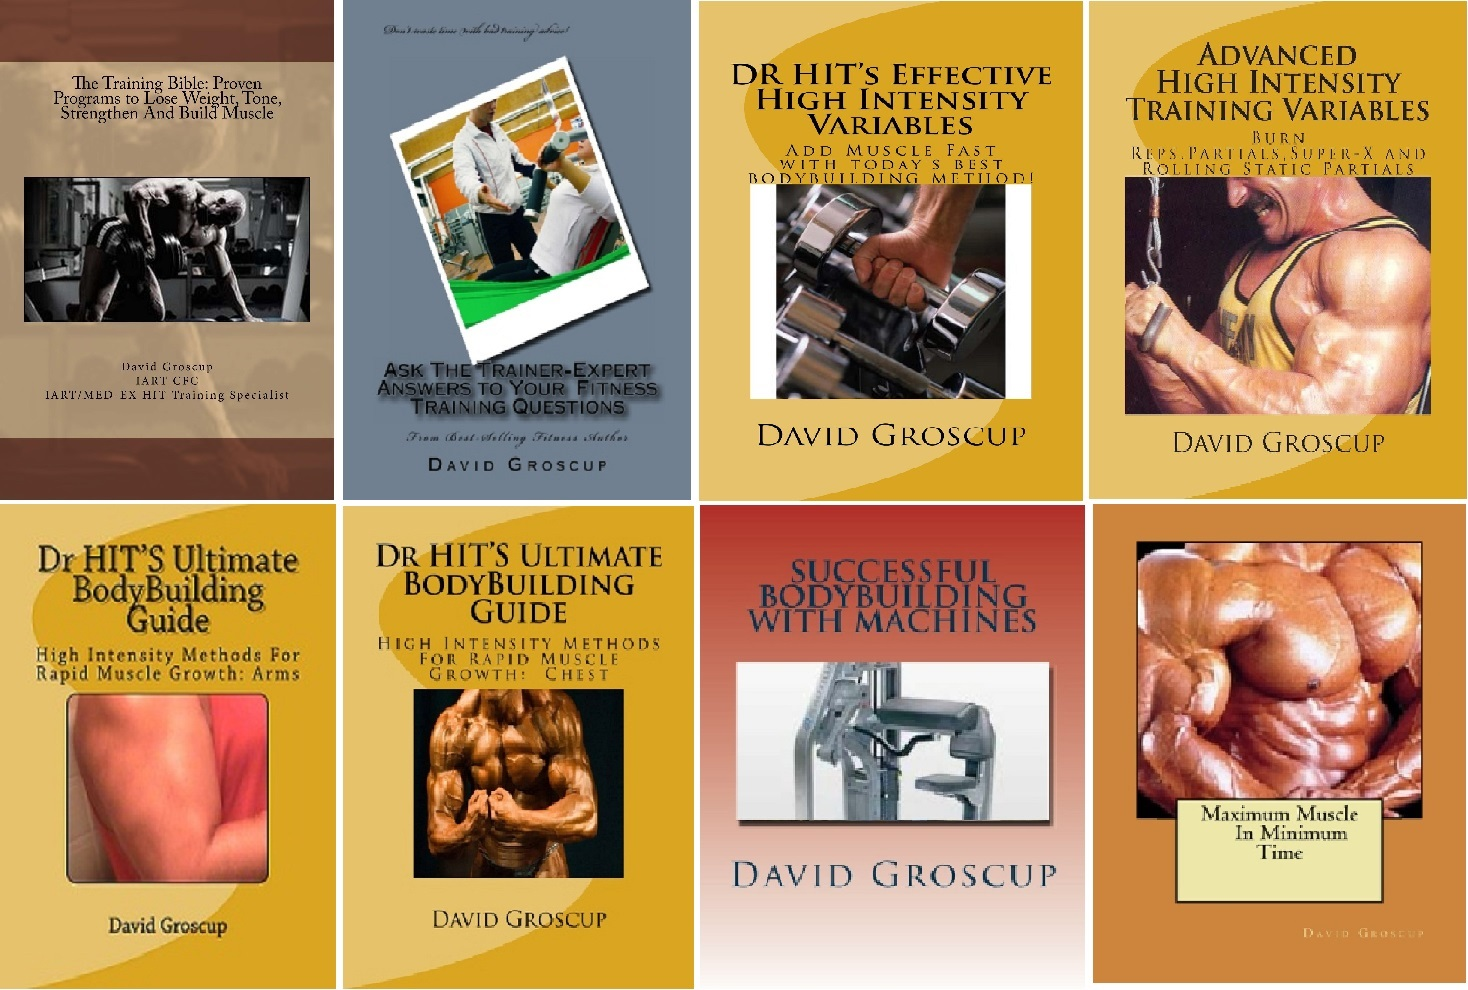 Now Offering My Eight eBook Volume On HIT and Volume Bodybuilding Training